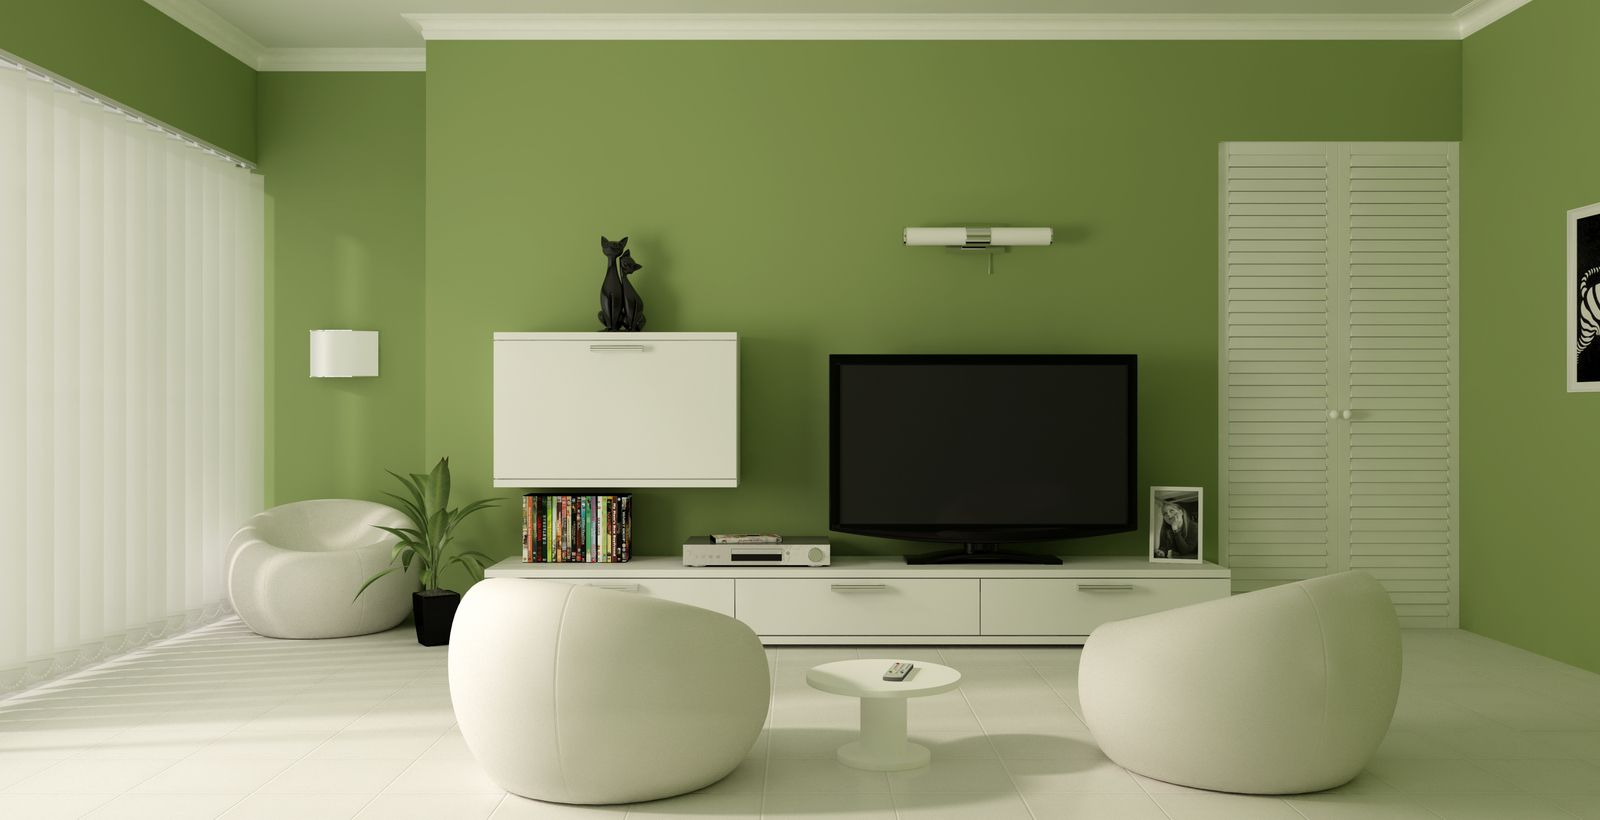 Beau Add Green Living Room Paint Ideas For Simple Room With White Chairs And  Round Side Table